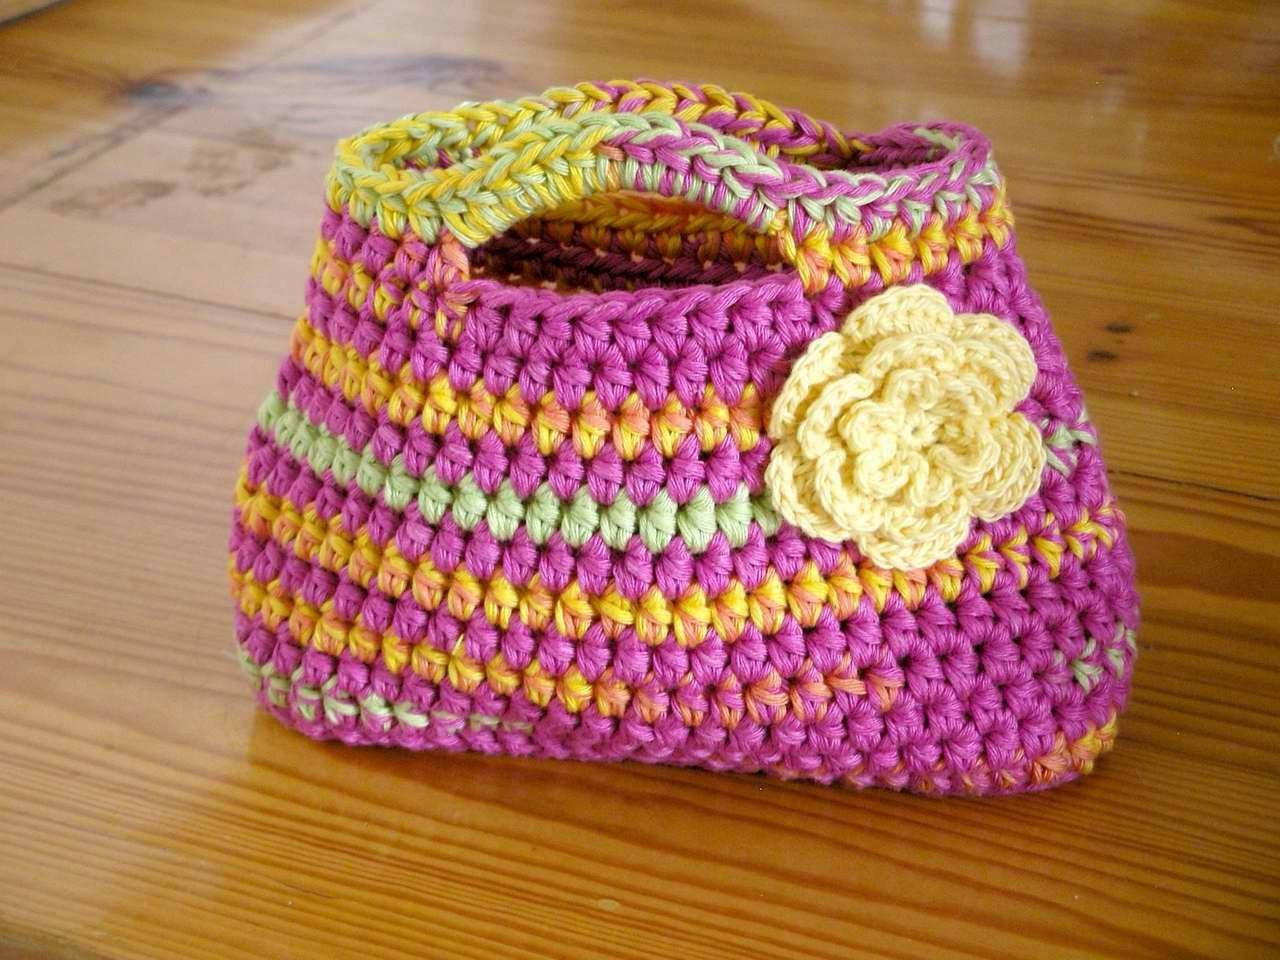 Simple Crochet Patterns Best Of Handbag Crochet Pattern Easy Peasy Little Kids Bag Crochet Of Delightful 49 Models Simple Crochet Patterns